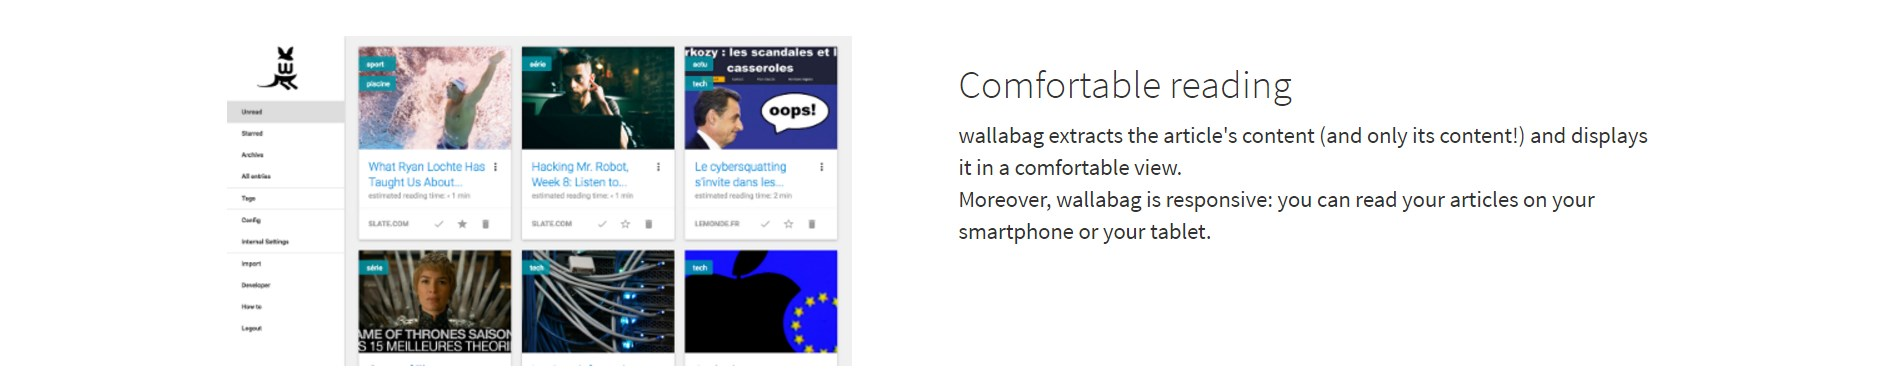 wallabag screenshot 1